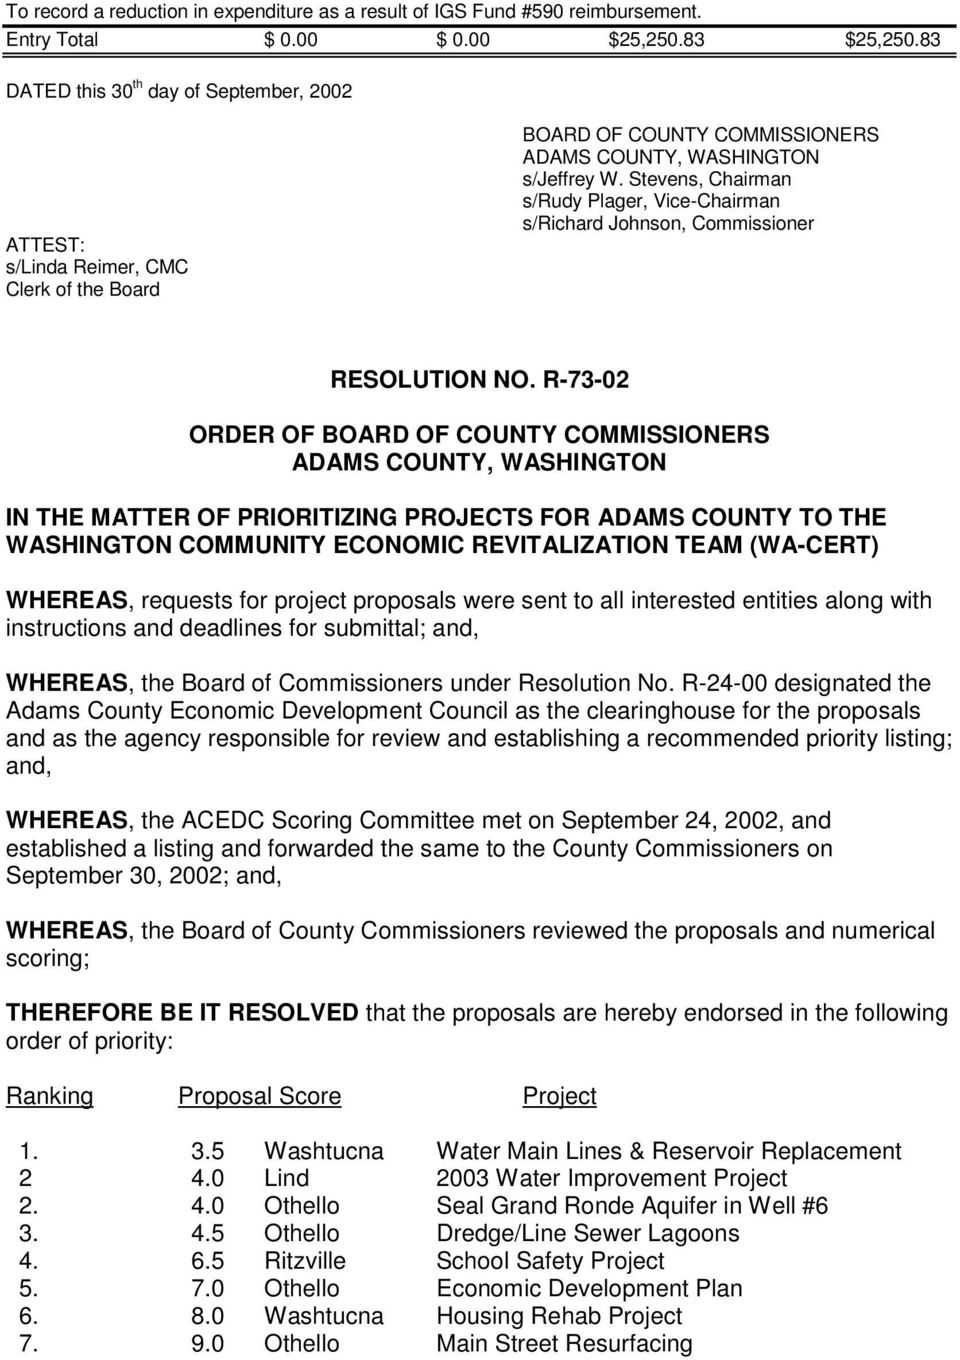 R-73-02 ORDER OF IN THE MATTER OF PRIORITIZING PROJECTS FOR ADAMS COUNTY TO THE WASHINGTON COMMUNITY ECONOMIC REVITALIZATION TEAM (WA-CERT) WHEREAS, requests for project proposals were sent to all